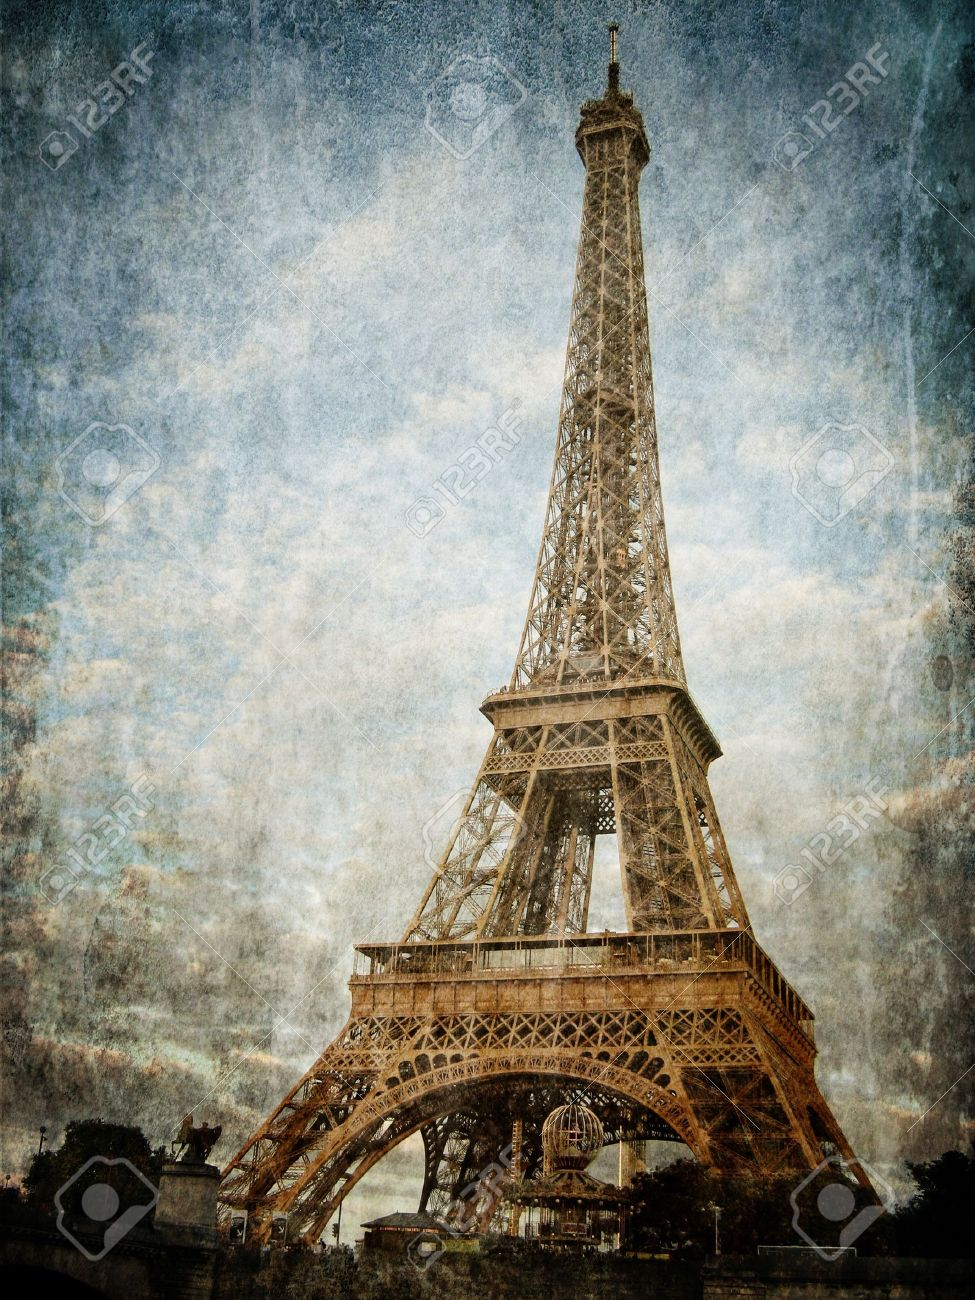 Vintage images of Eiffel Tower - 14602648